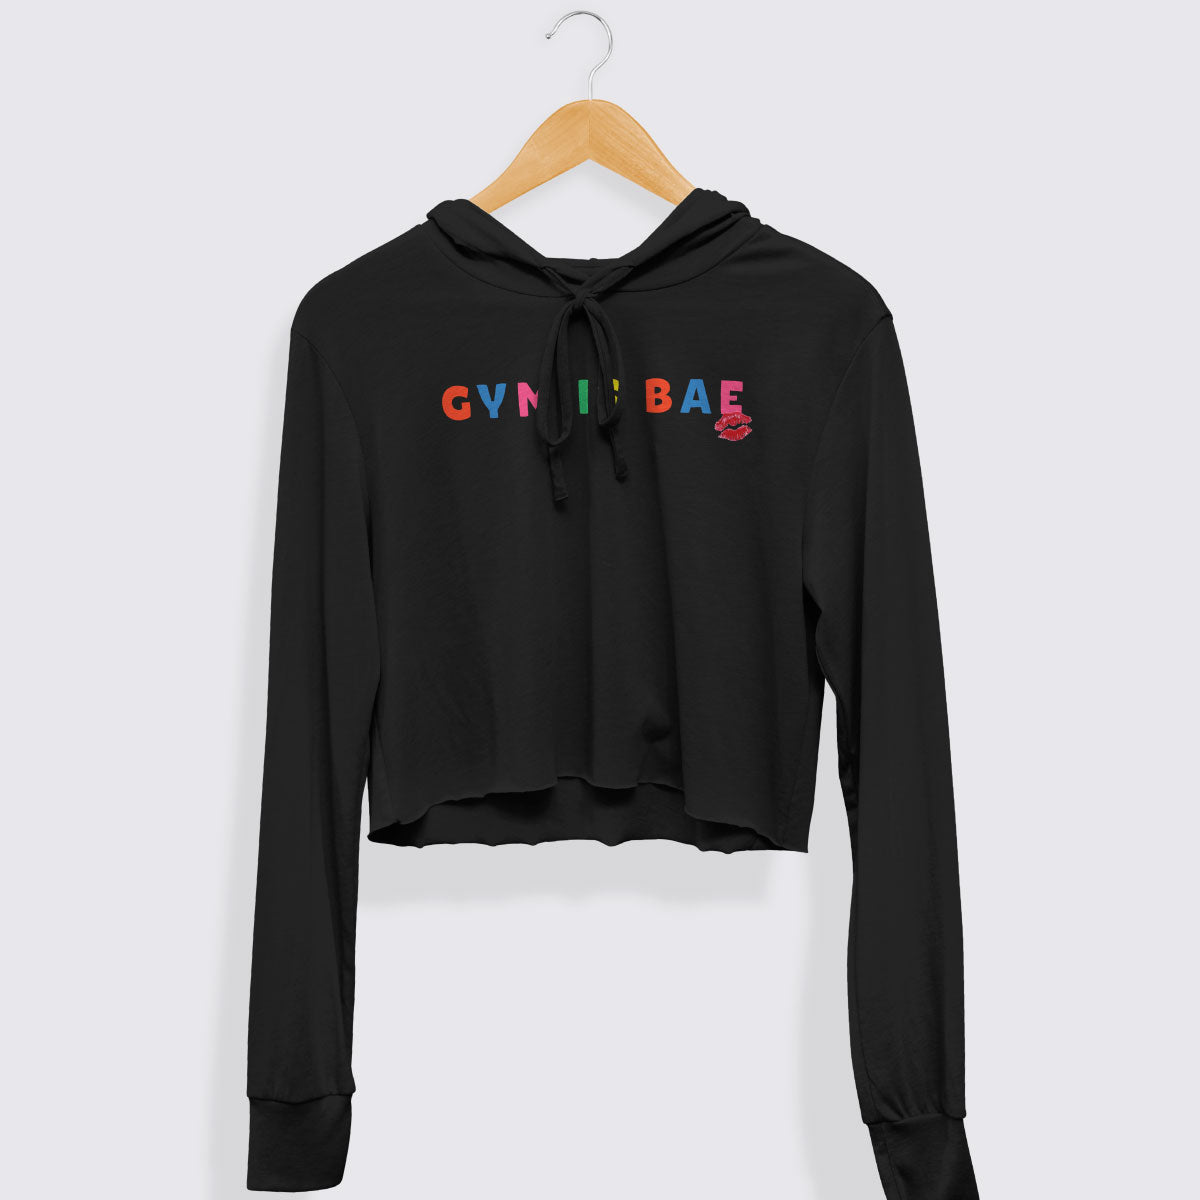 Gym is Bae Cropped Lightweight Hooded Tee